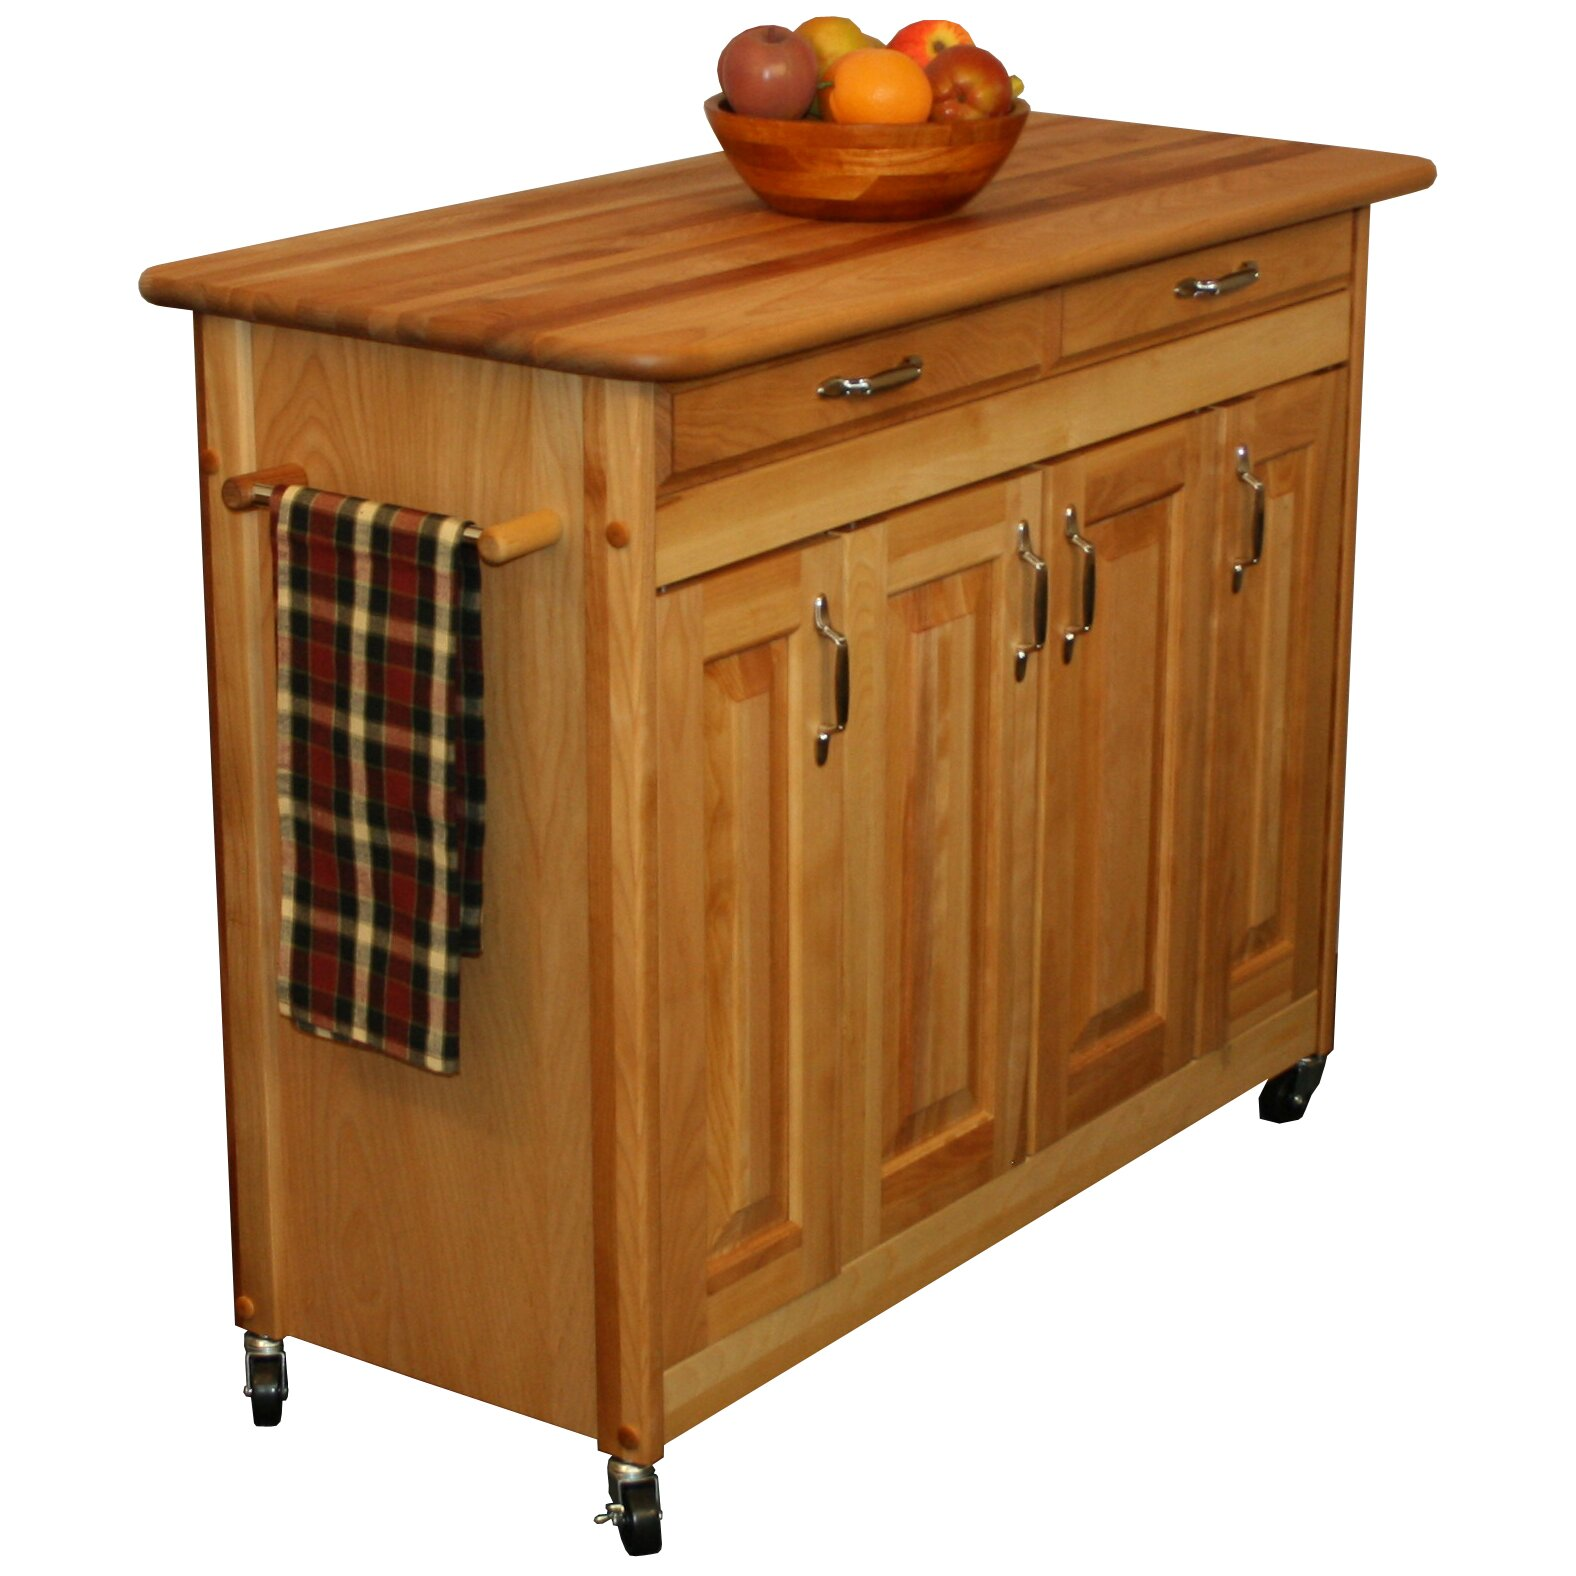 catskill craftsmen kitchen island catskill craftsmen kitchen island amp reviews wayfair 5141